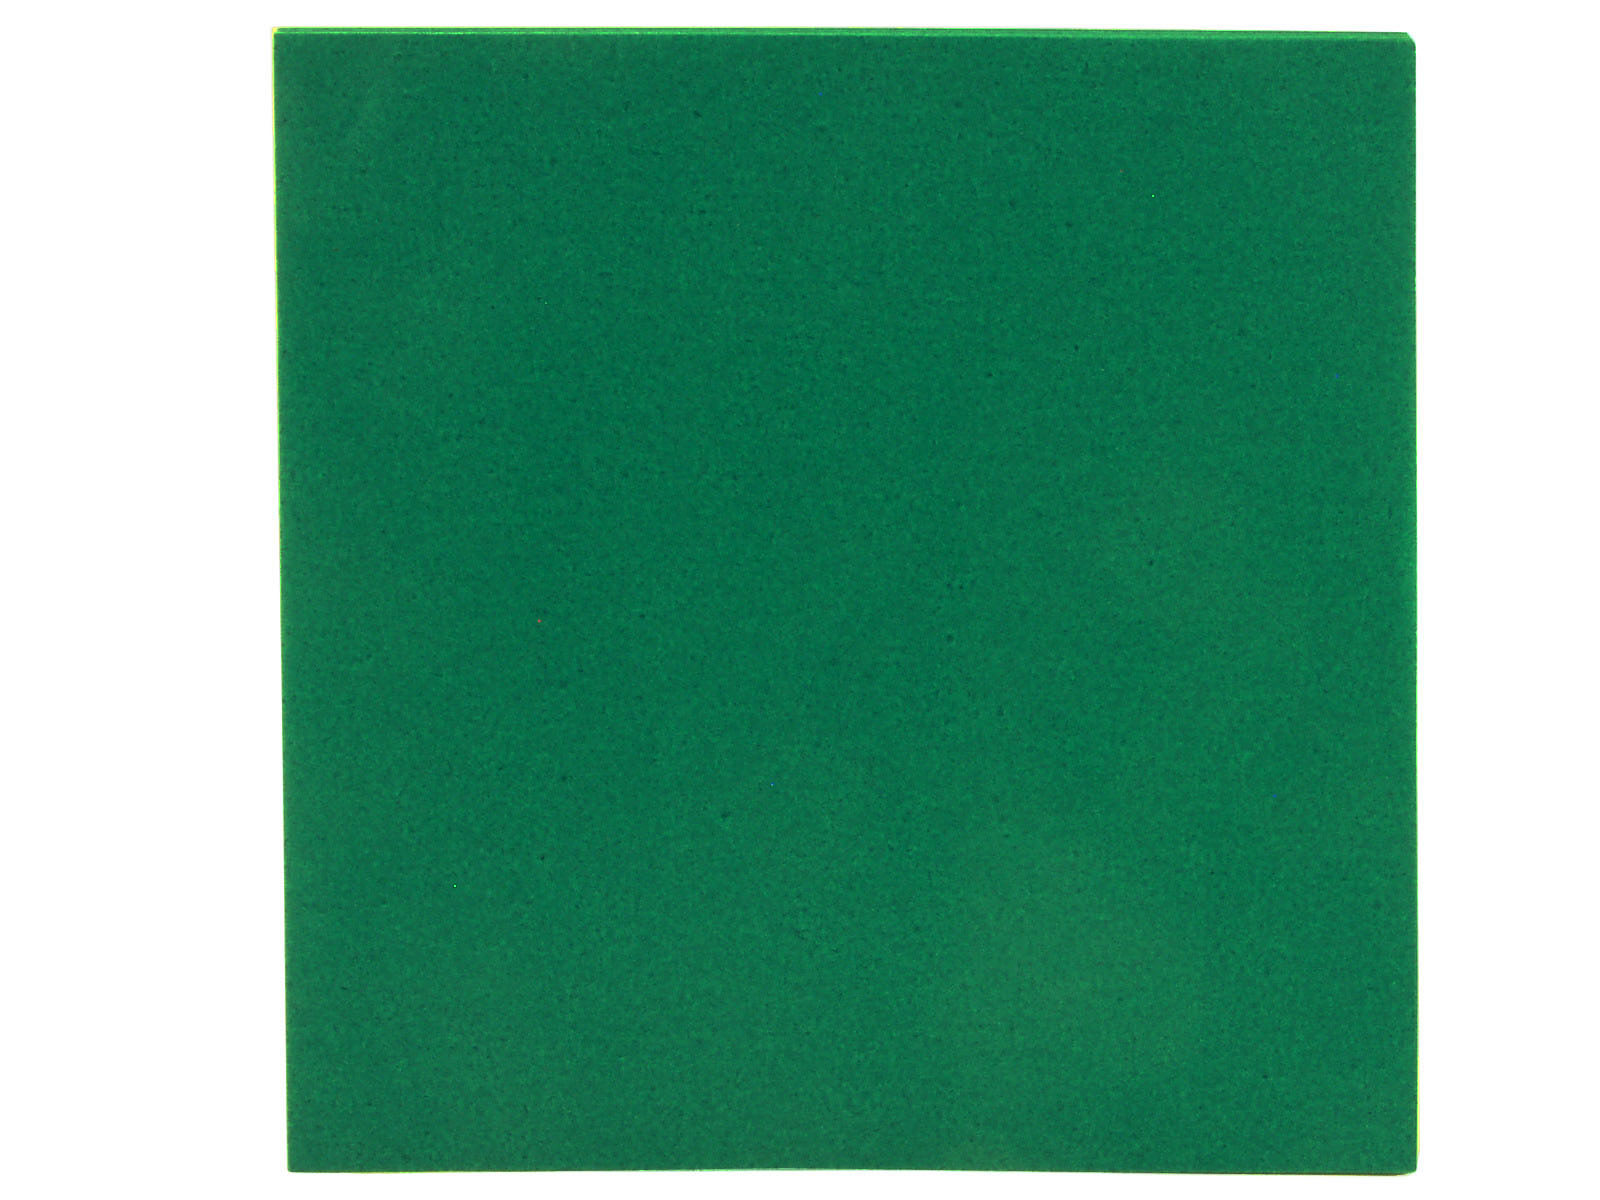 essay on color green With a personality color green you are a practical, down-to-earth person with a love of nature.